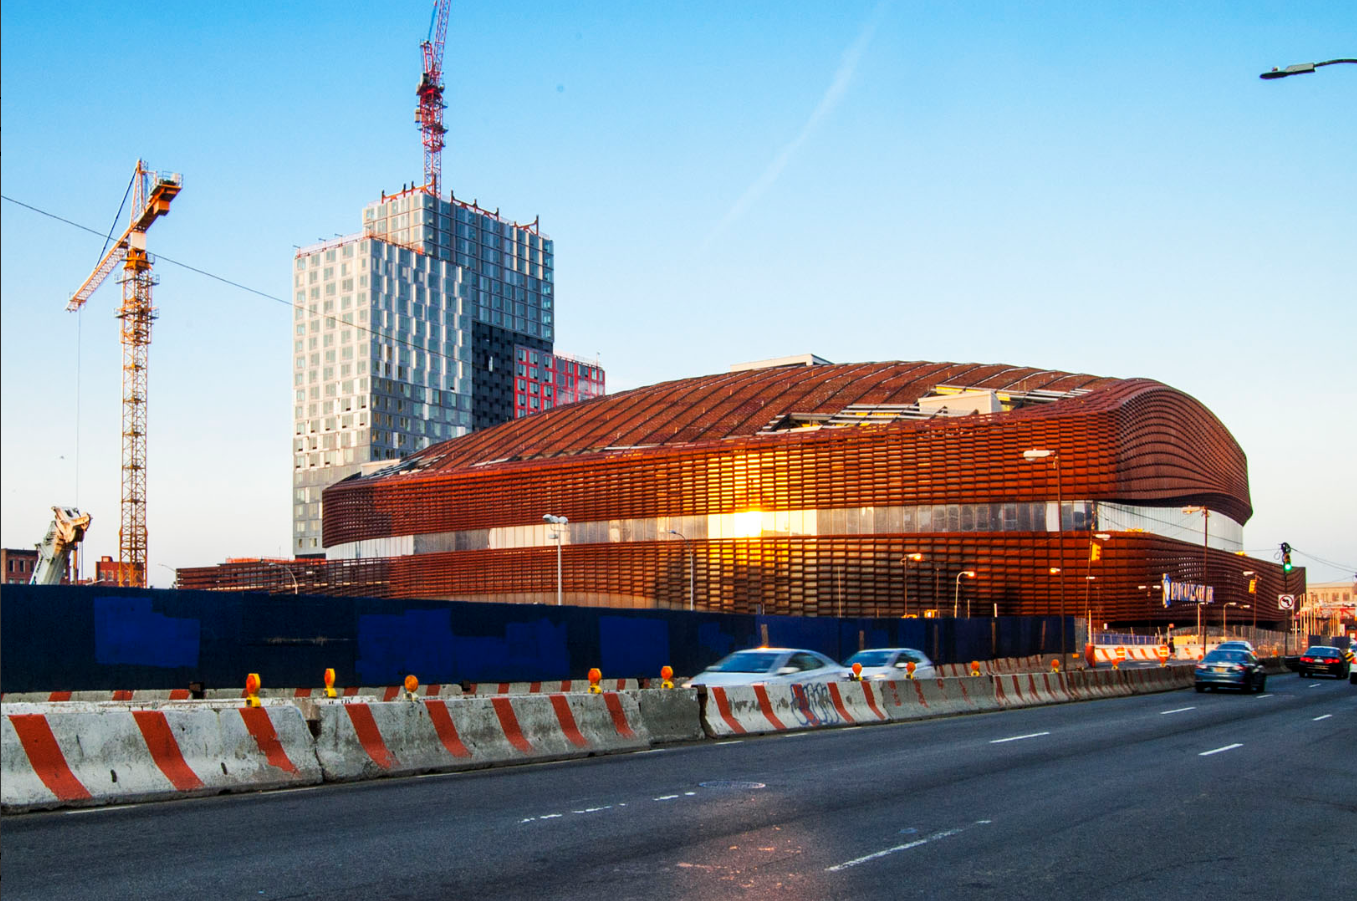 "The ""strange but appealing mass"" of Barclays Center, designed by ShoP Architects and opened in 2012. Image by Jonathan Chesley."